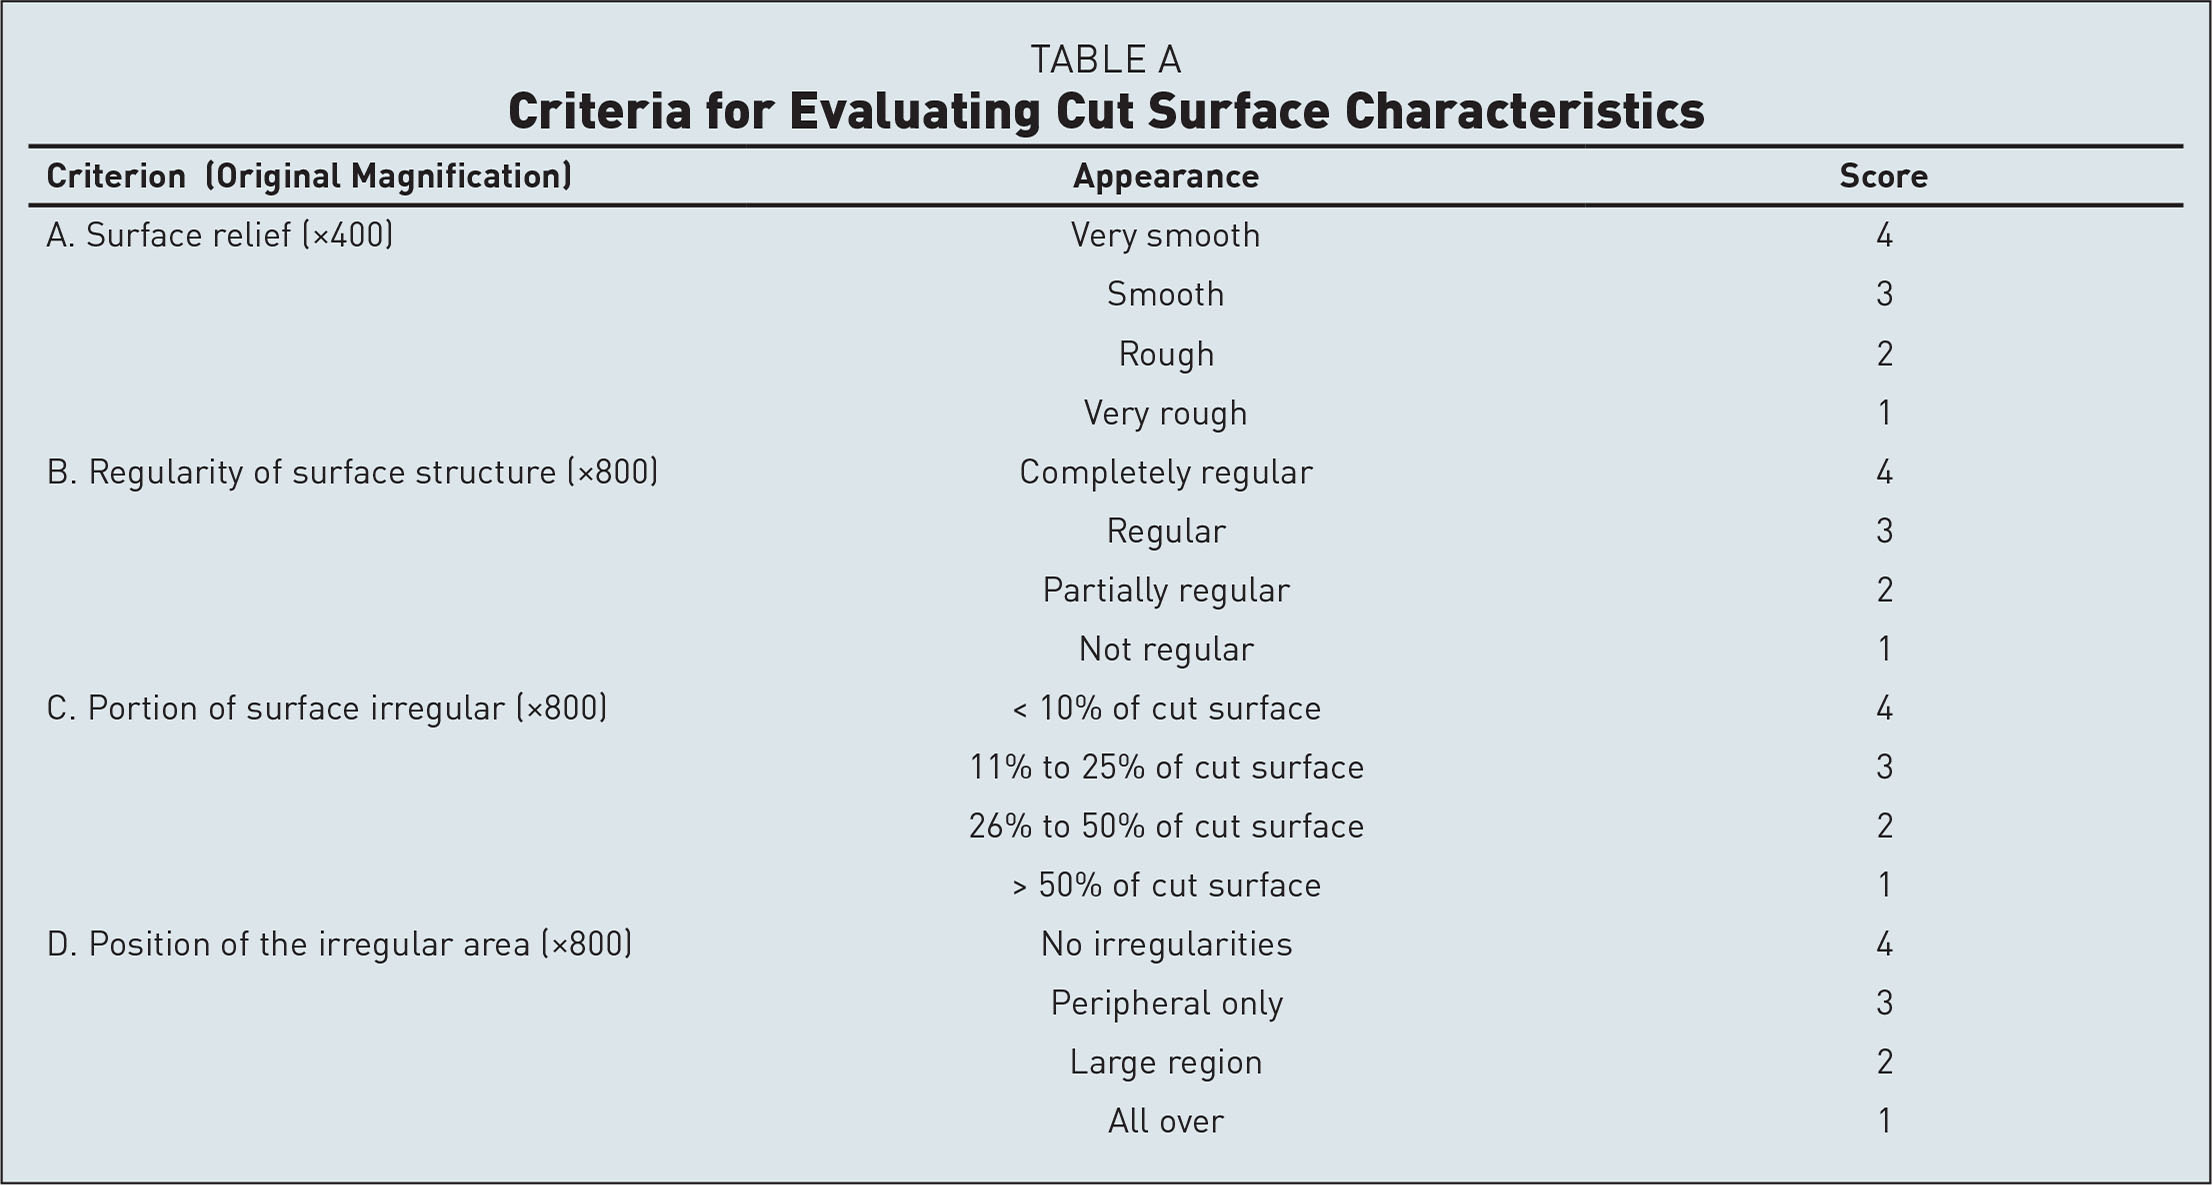 Criteria for Evaluating Cut Surface Characteristics